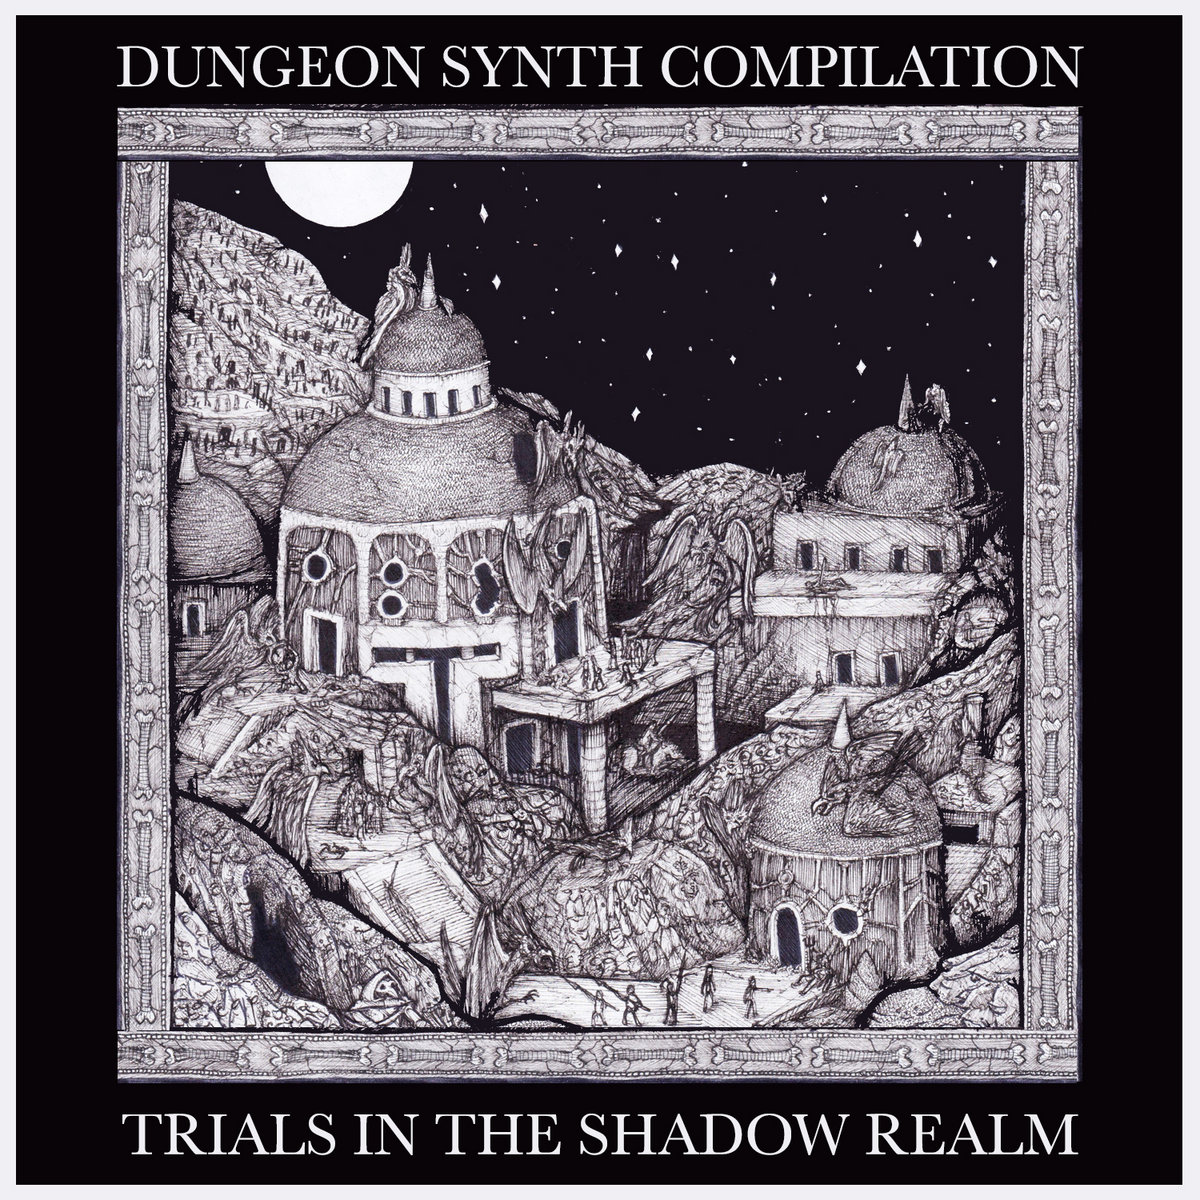 Music | Dungeon Synth Compilation